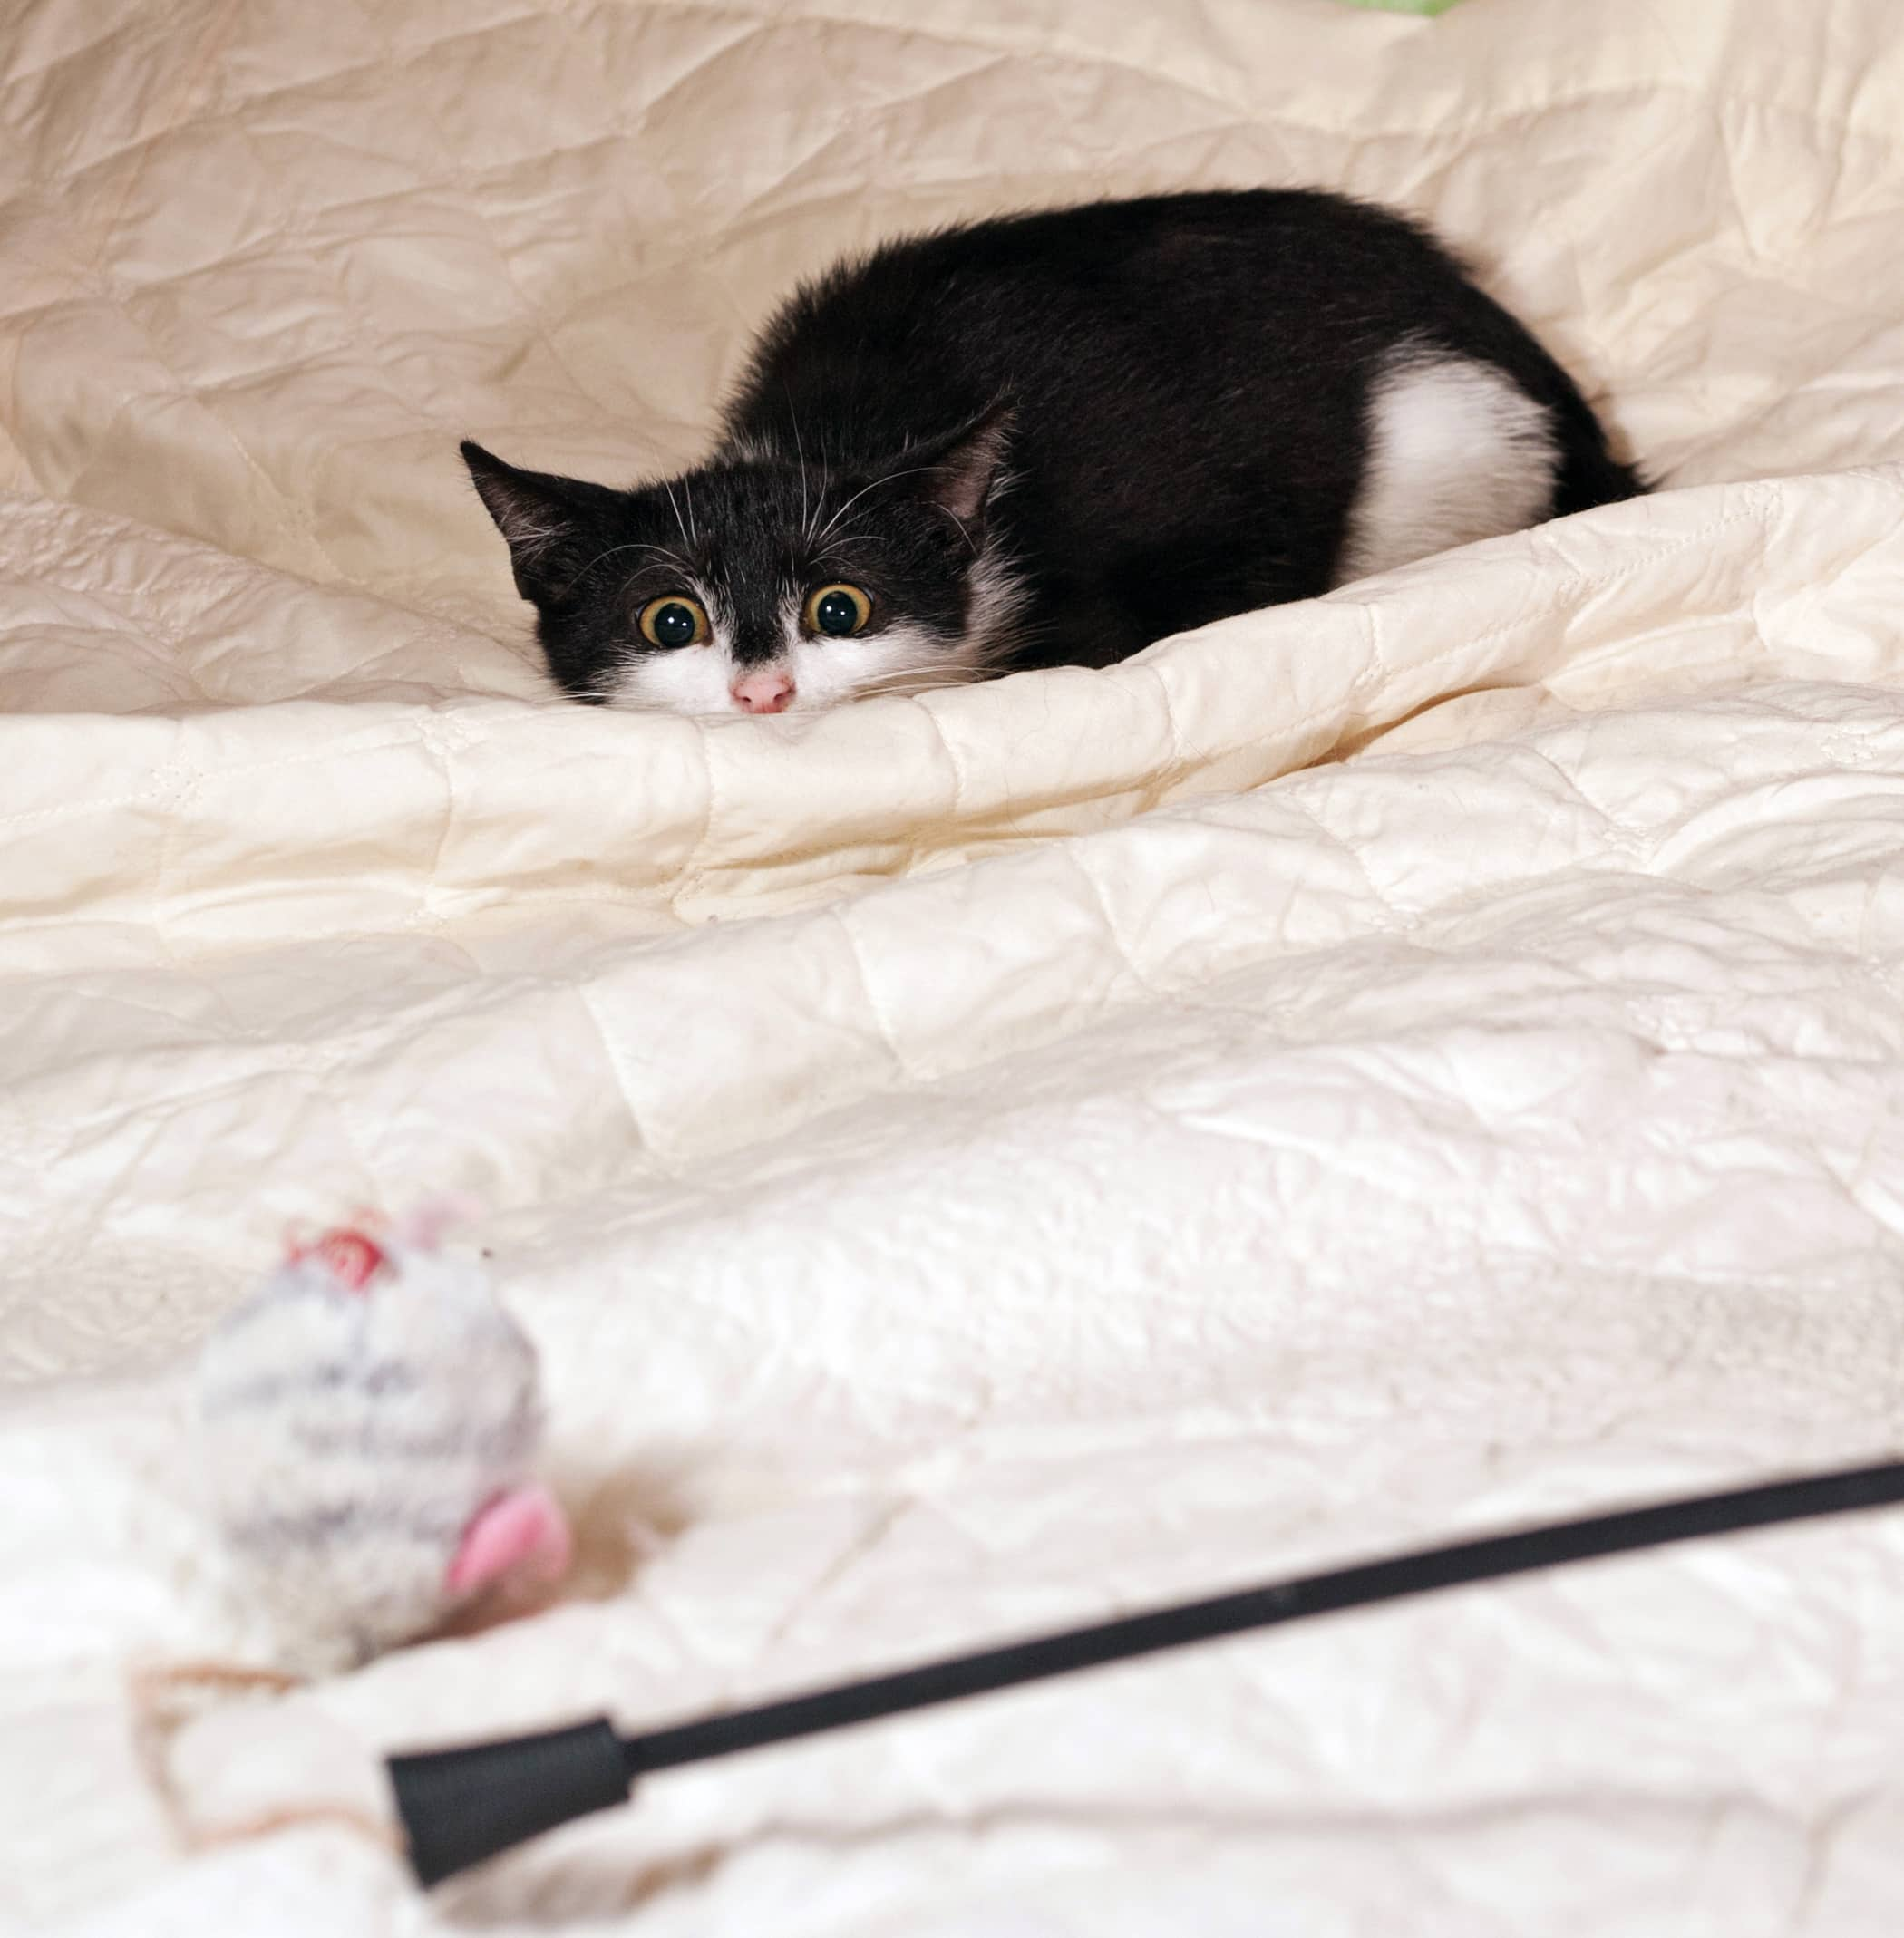 Black and white kitten ready to pounce on toy mouse on a white bedspread.